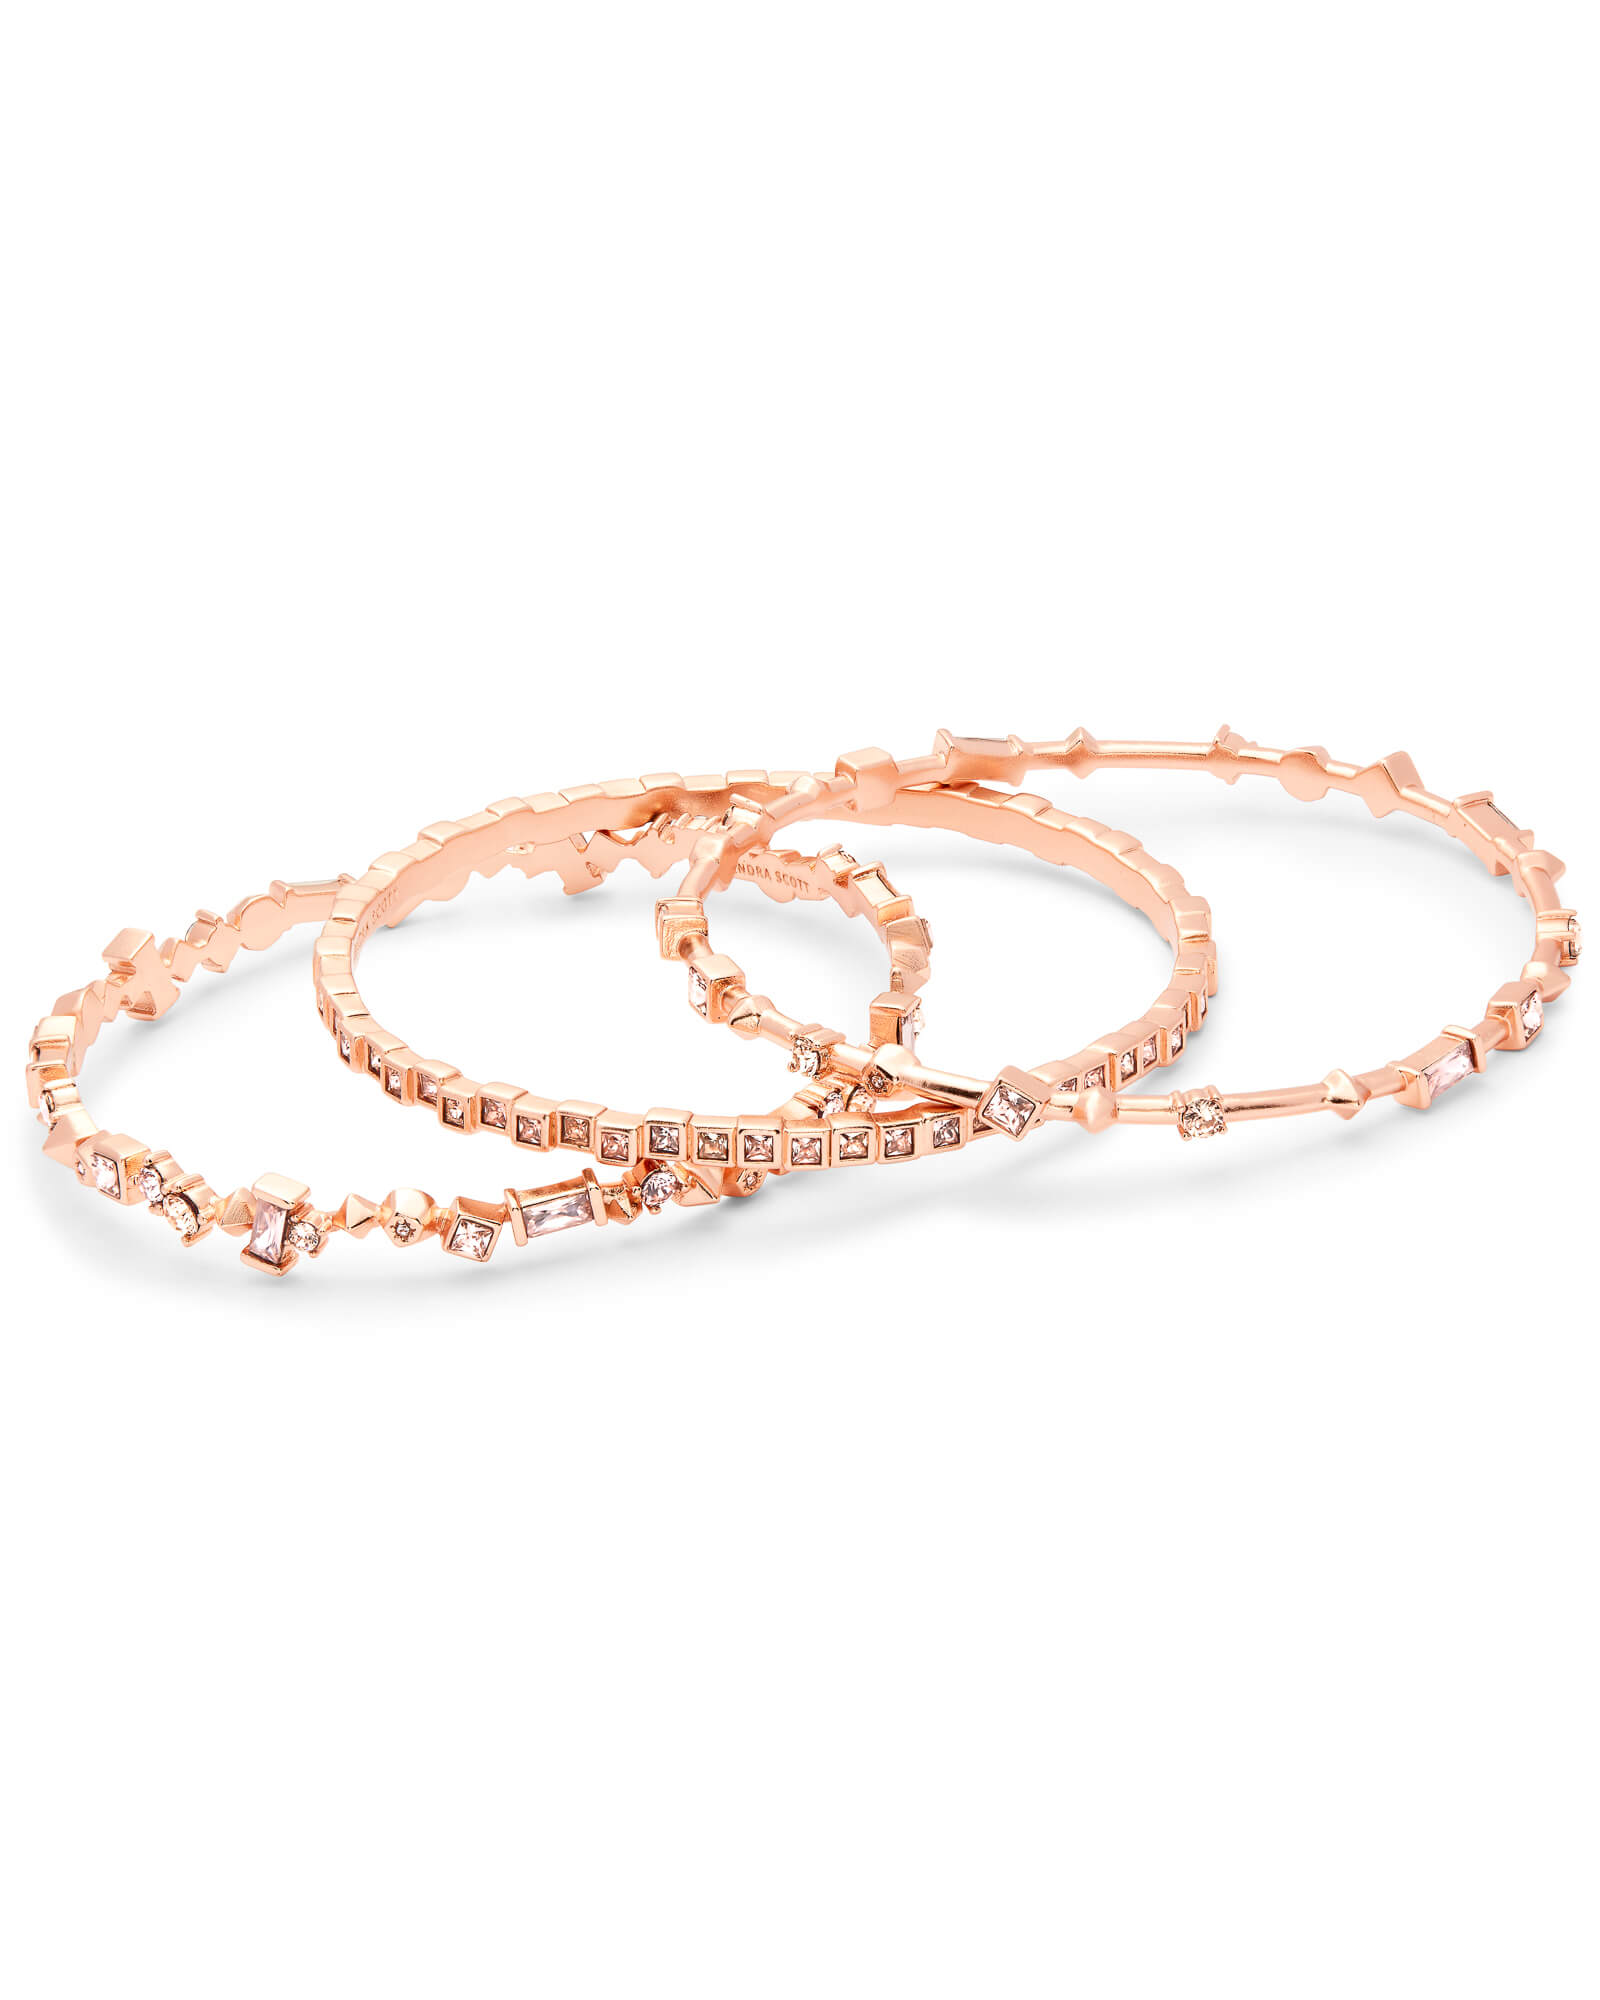 Malia Rose Gold Bangle Bracelet Set in Blush Mix